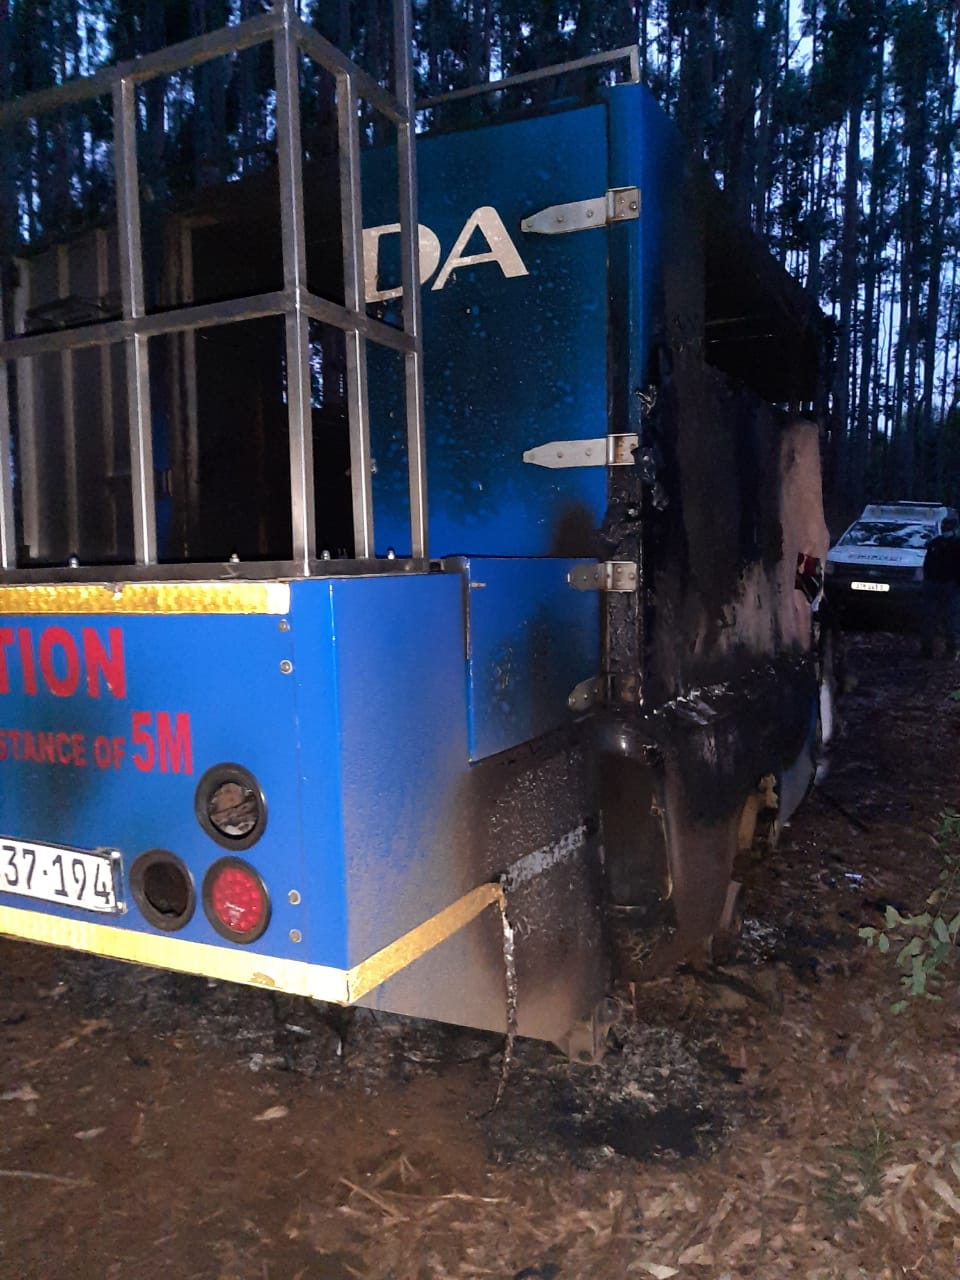 DA condemns another violent incident against staff members and destruction of property